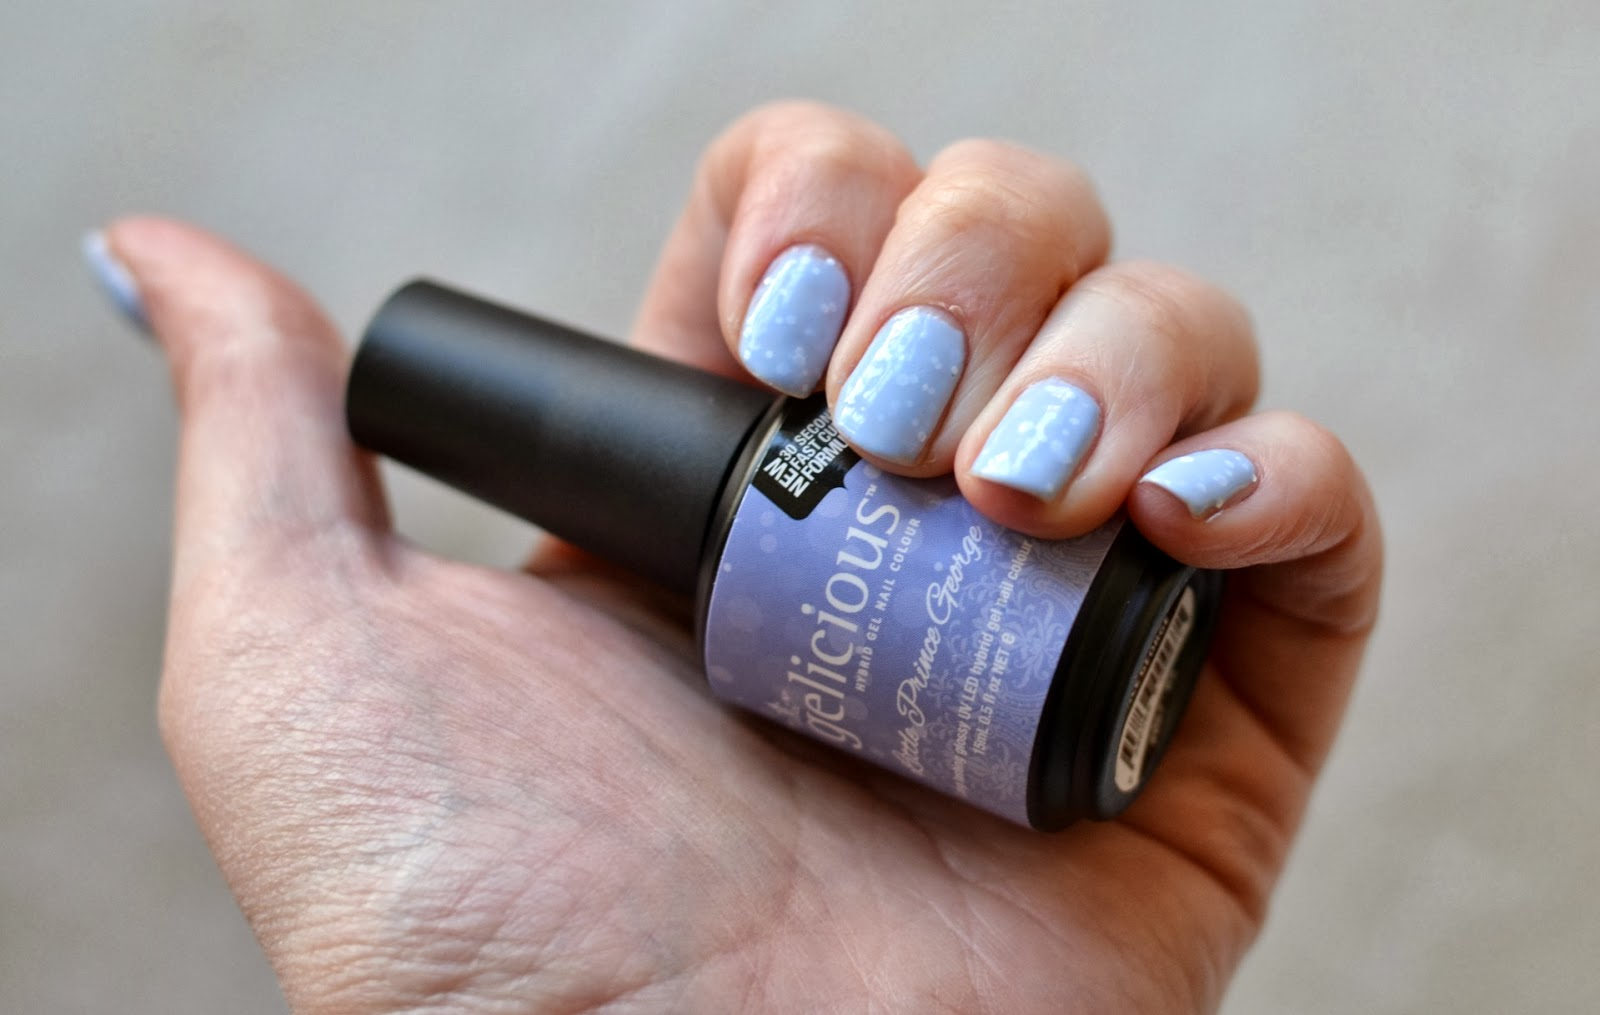 Gelicious UV gel nails review | UK Lifestyle Blog